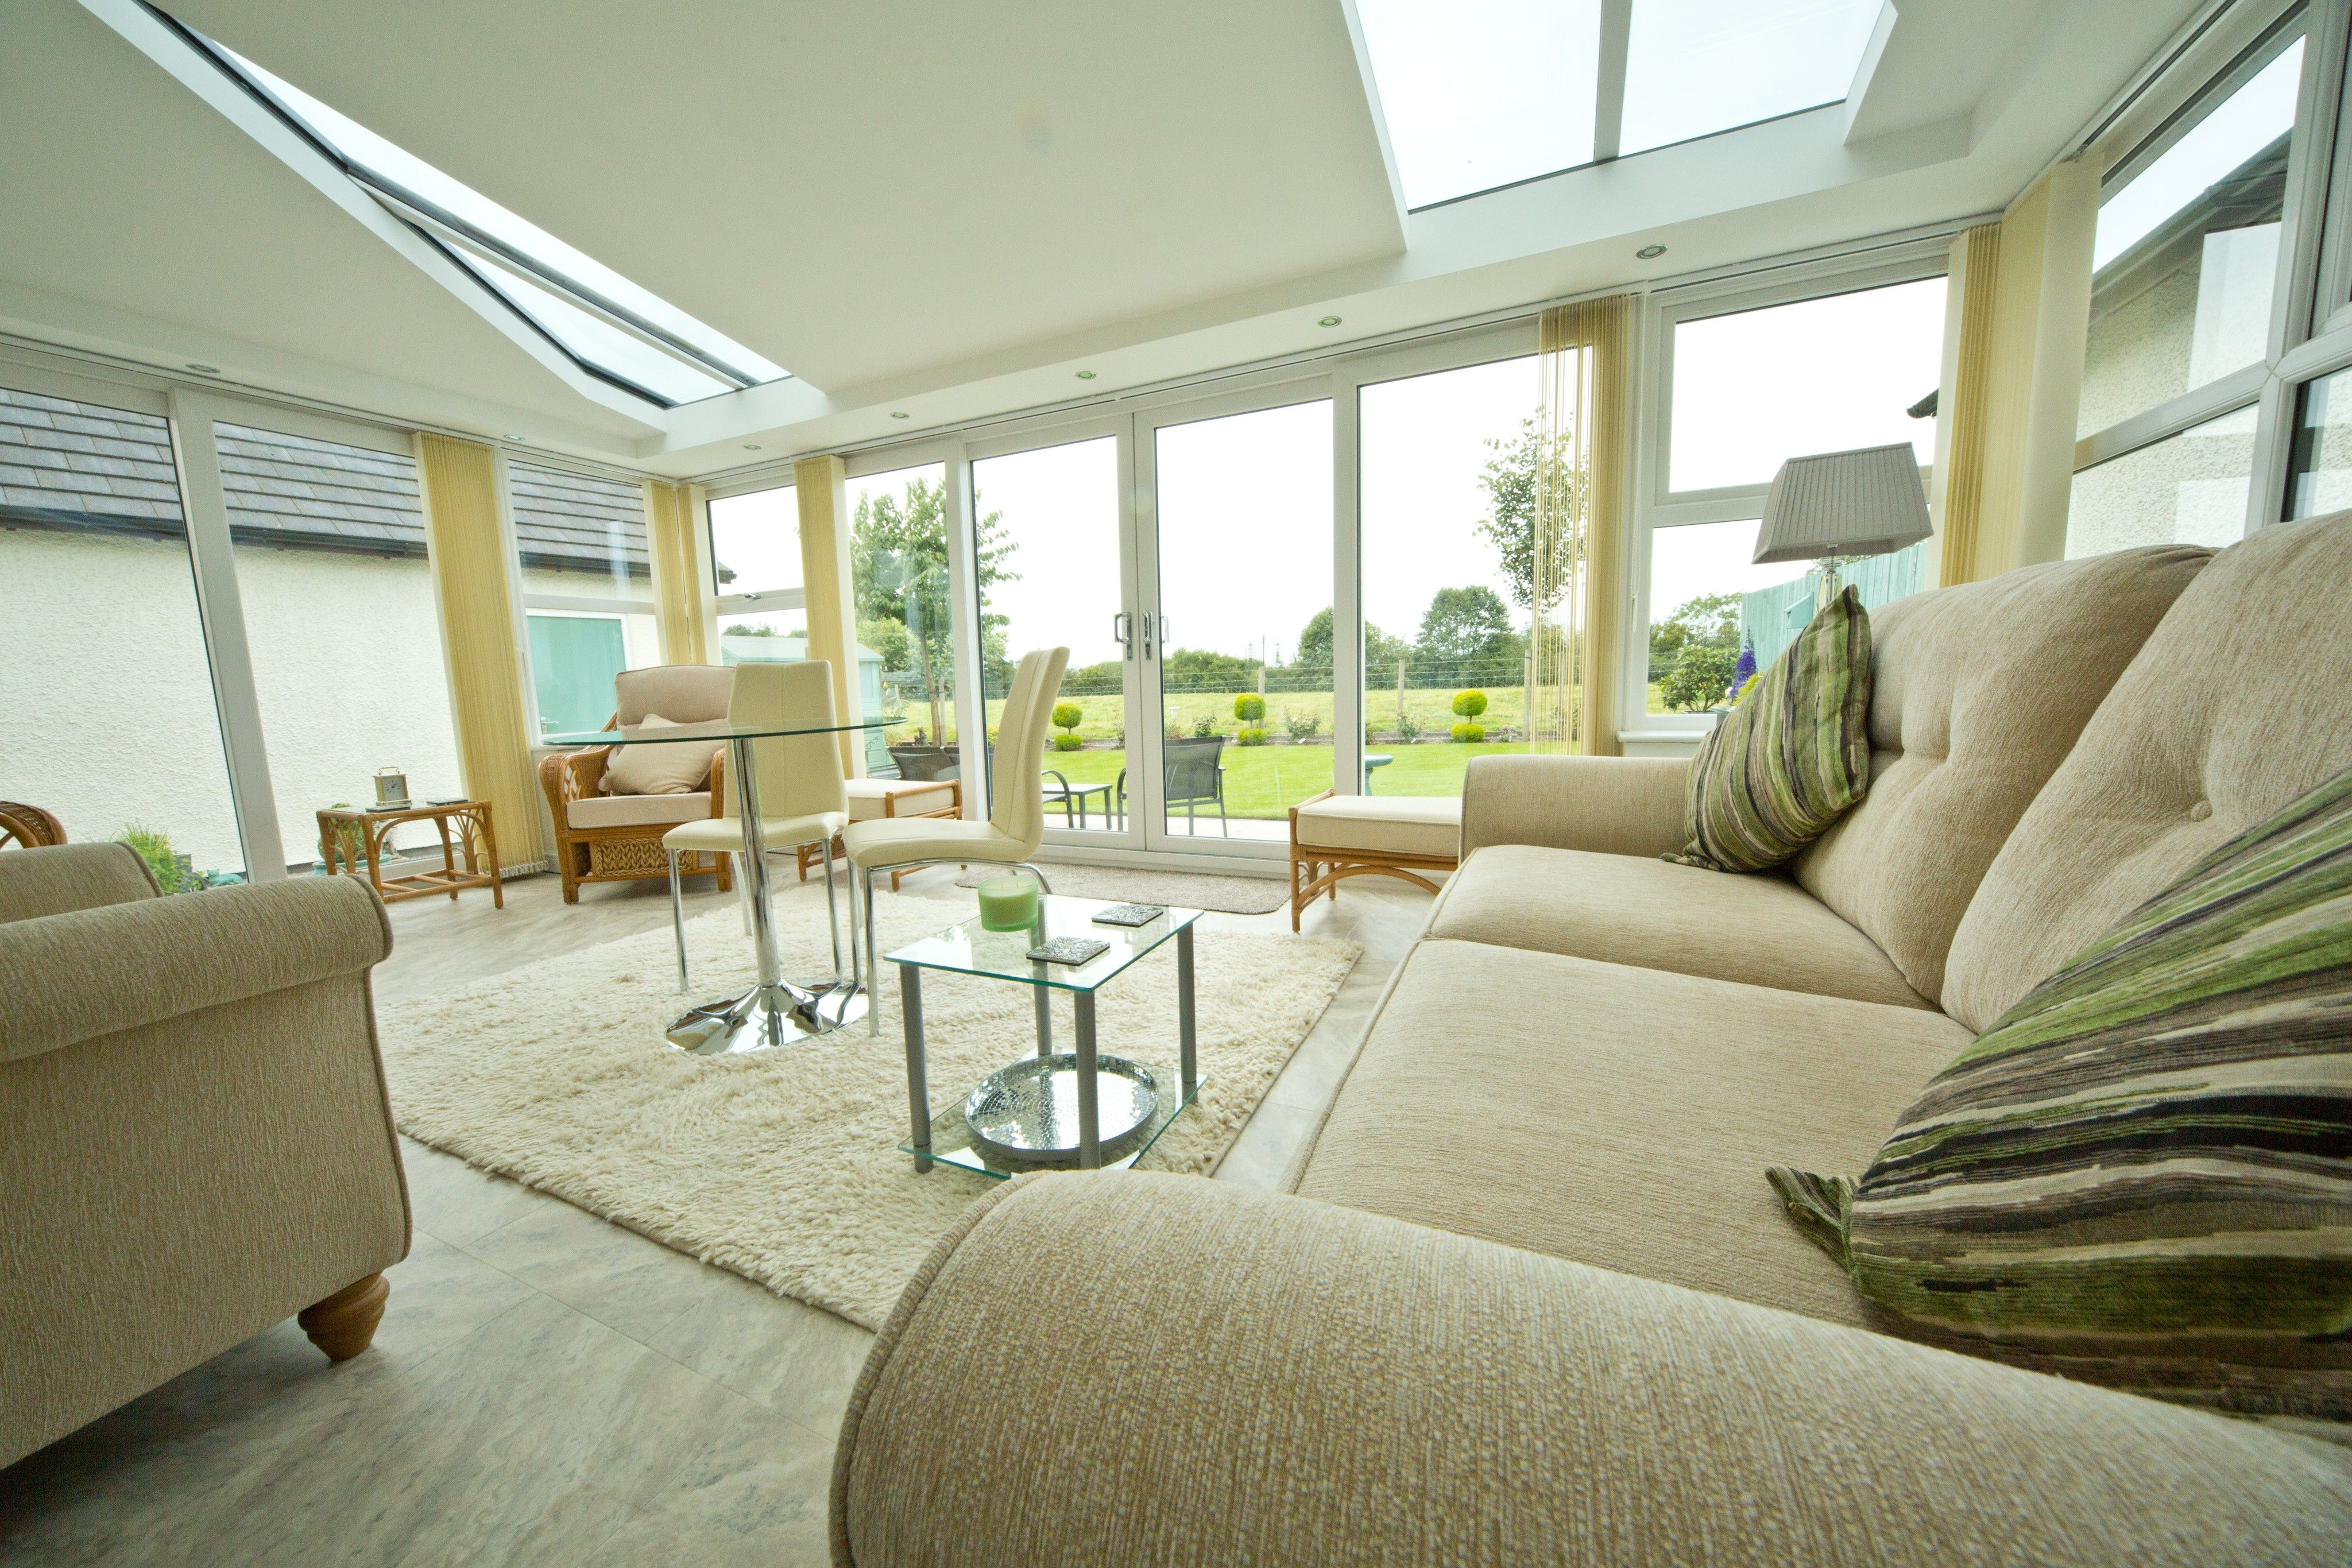 An Ultraframe House Extension With a Solid Roof ...